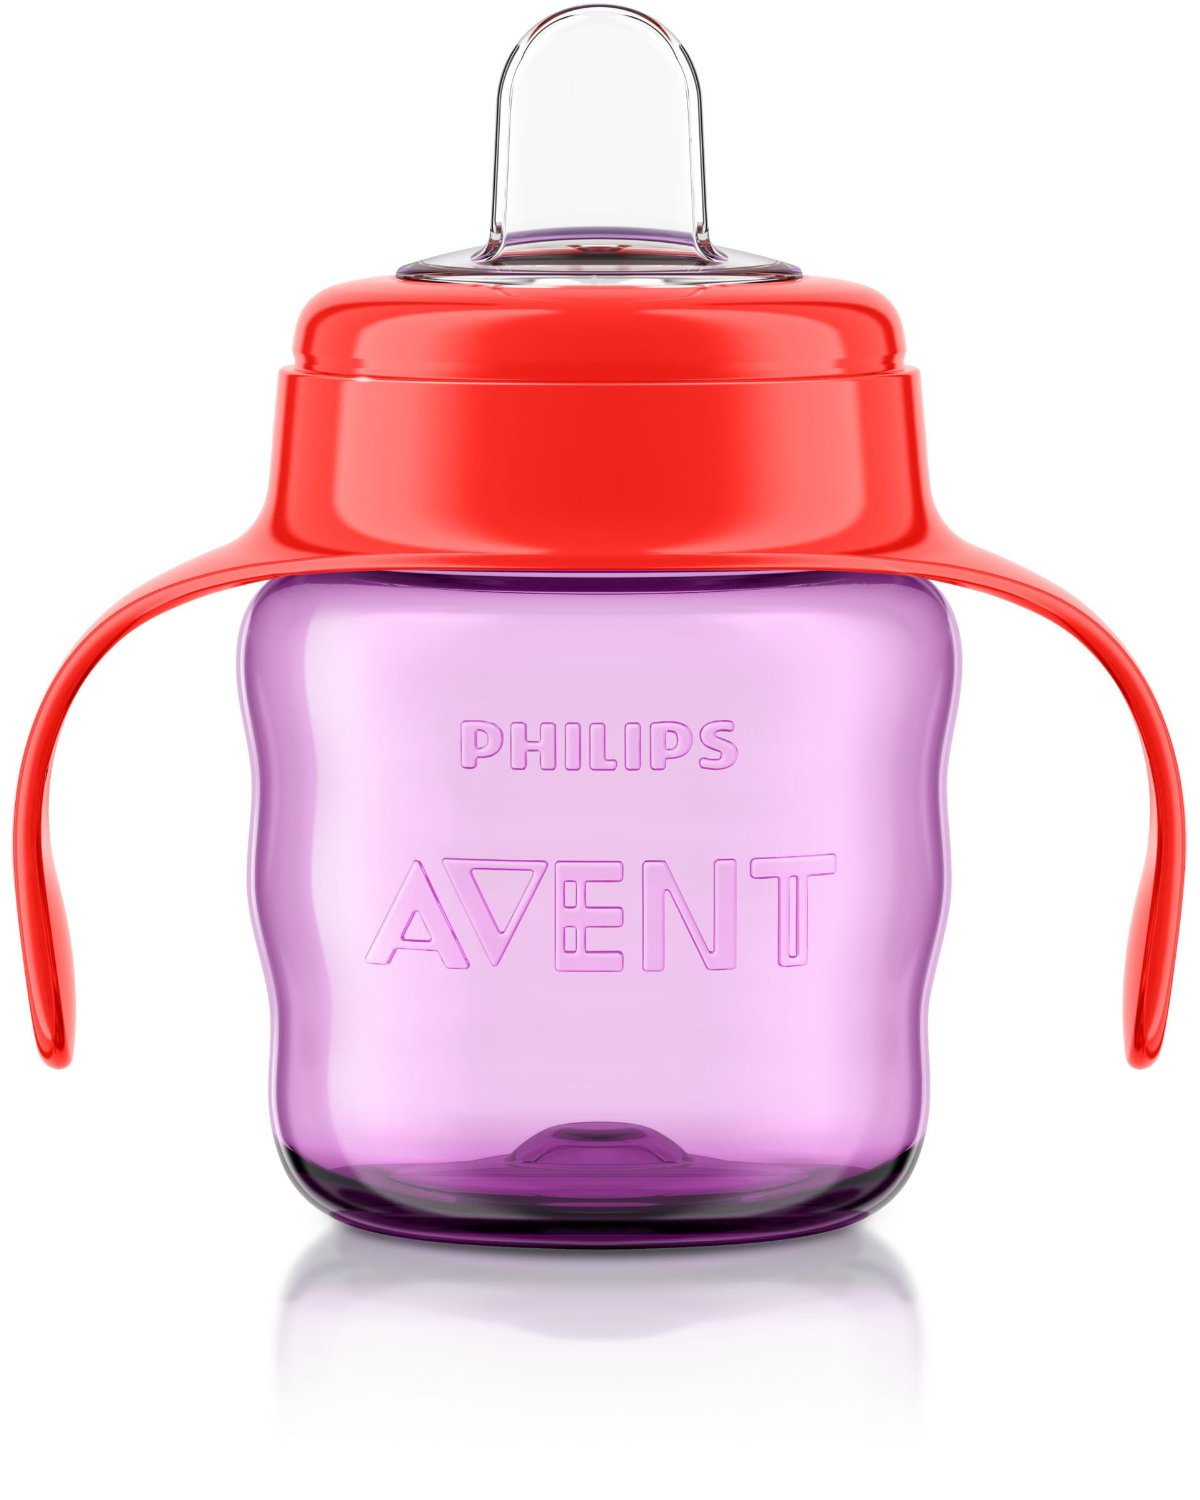 Philips Avent Easy Sip Spout Cup with Handle 200 ml Pink 6month